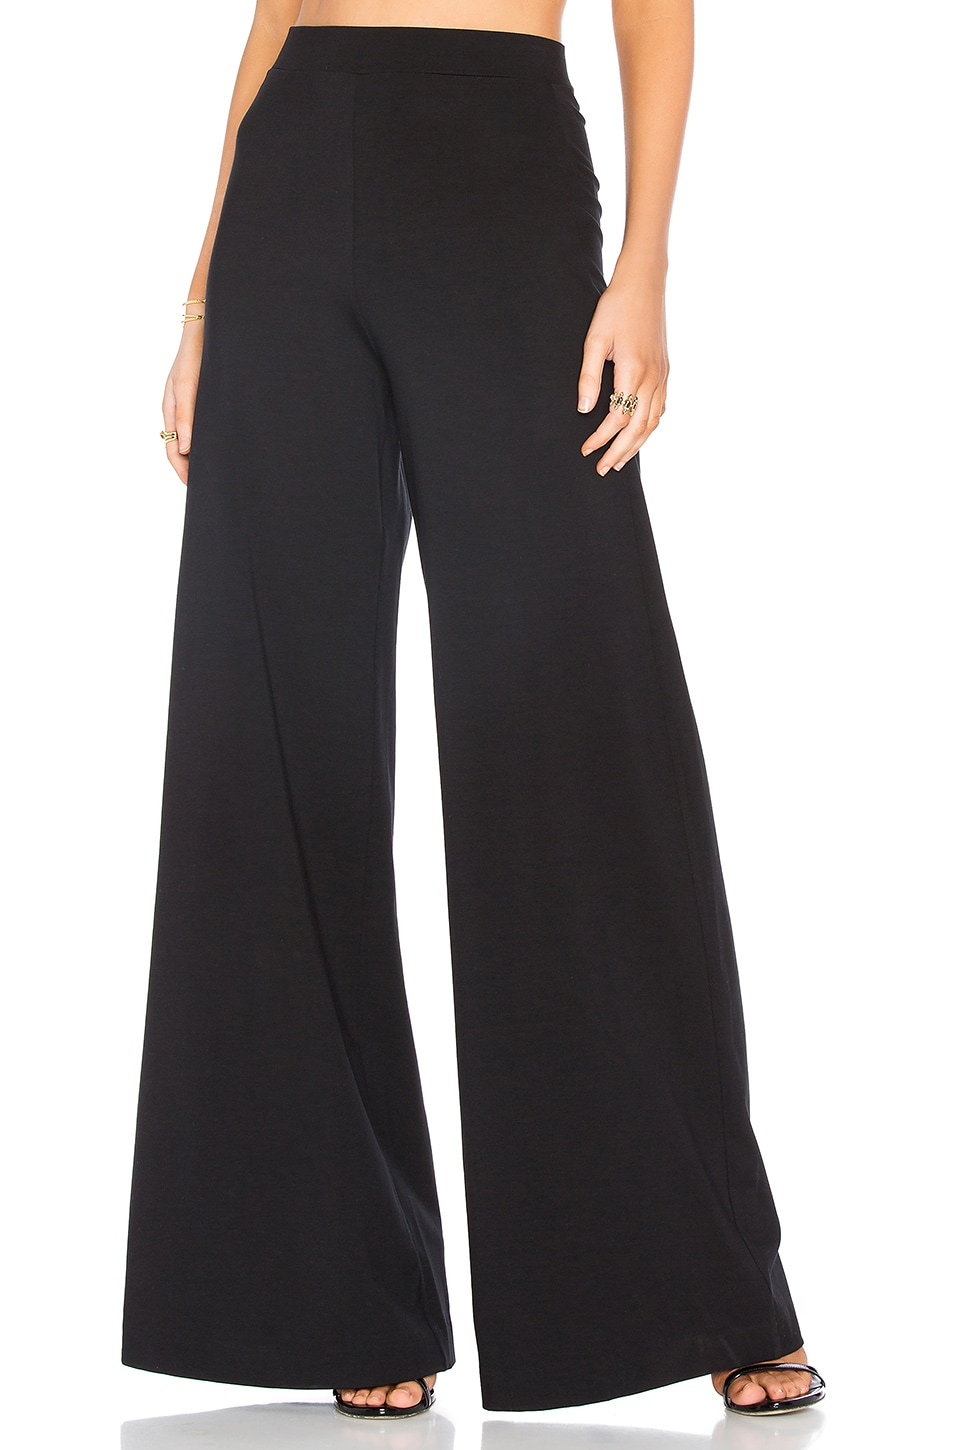 GETTINGBACKTOSQUAREONE The High Rise Palazzo Pant in Black